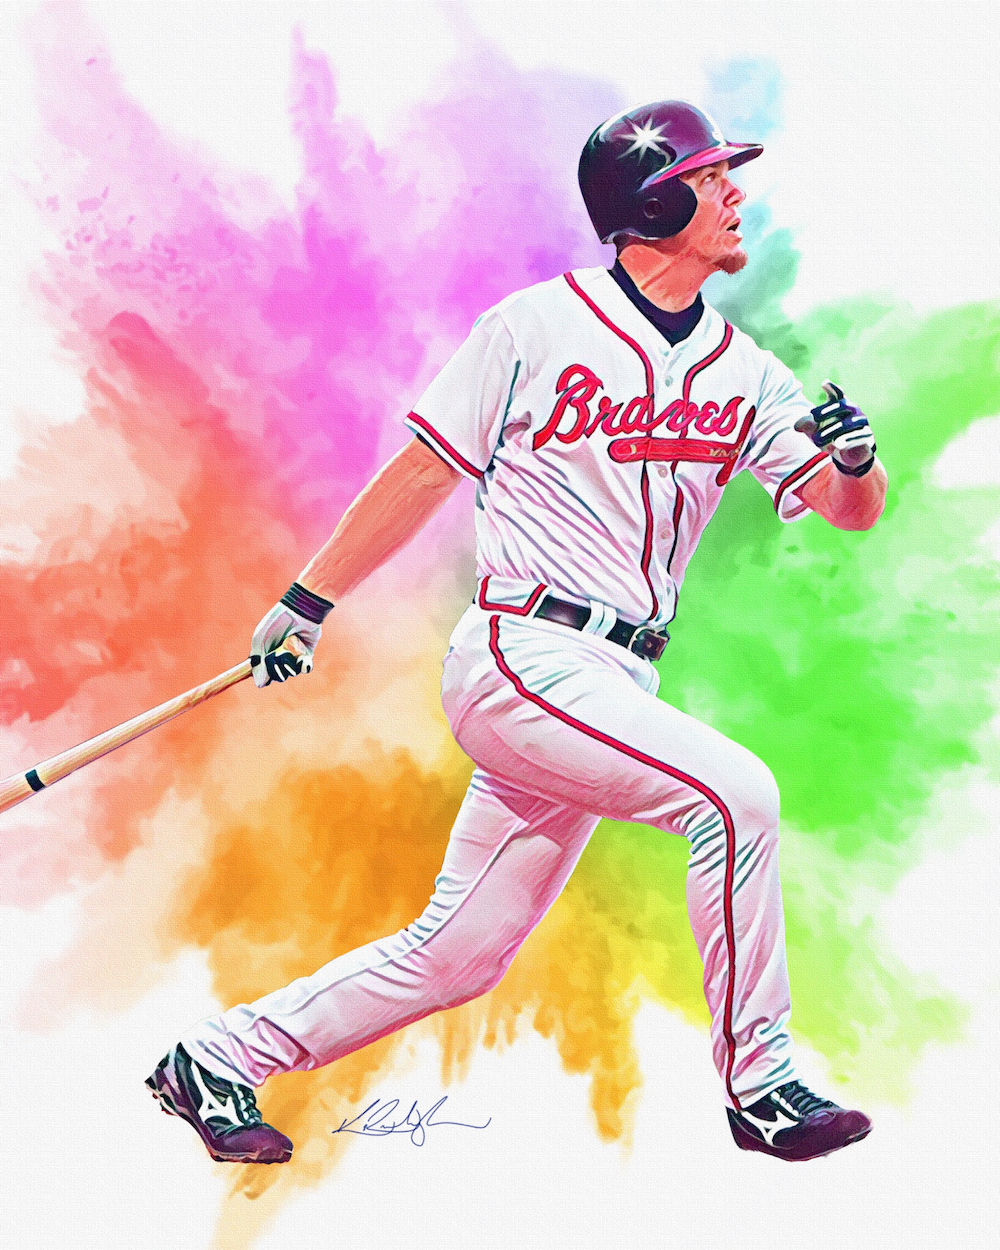 Chipper Jones / 2020 / Procreate